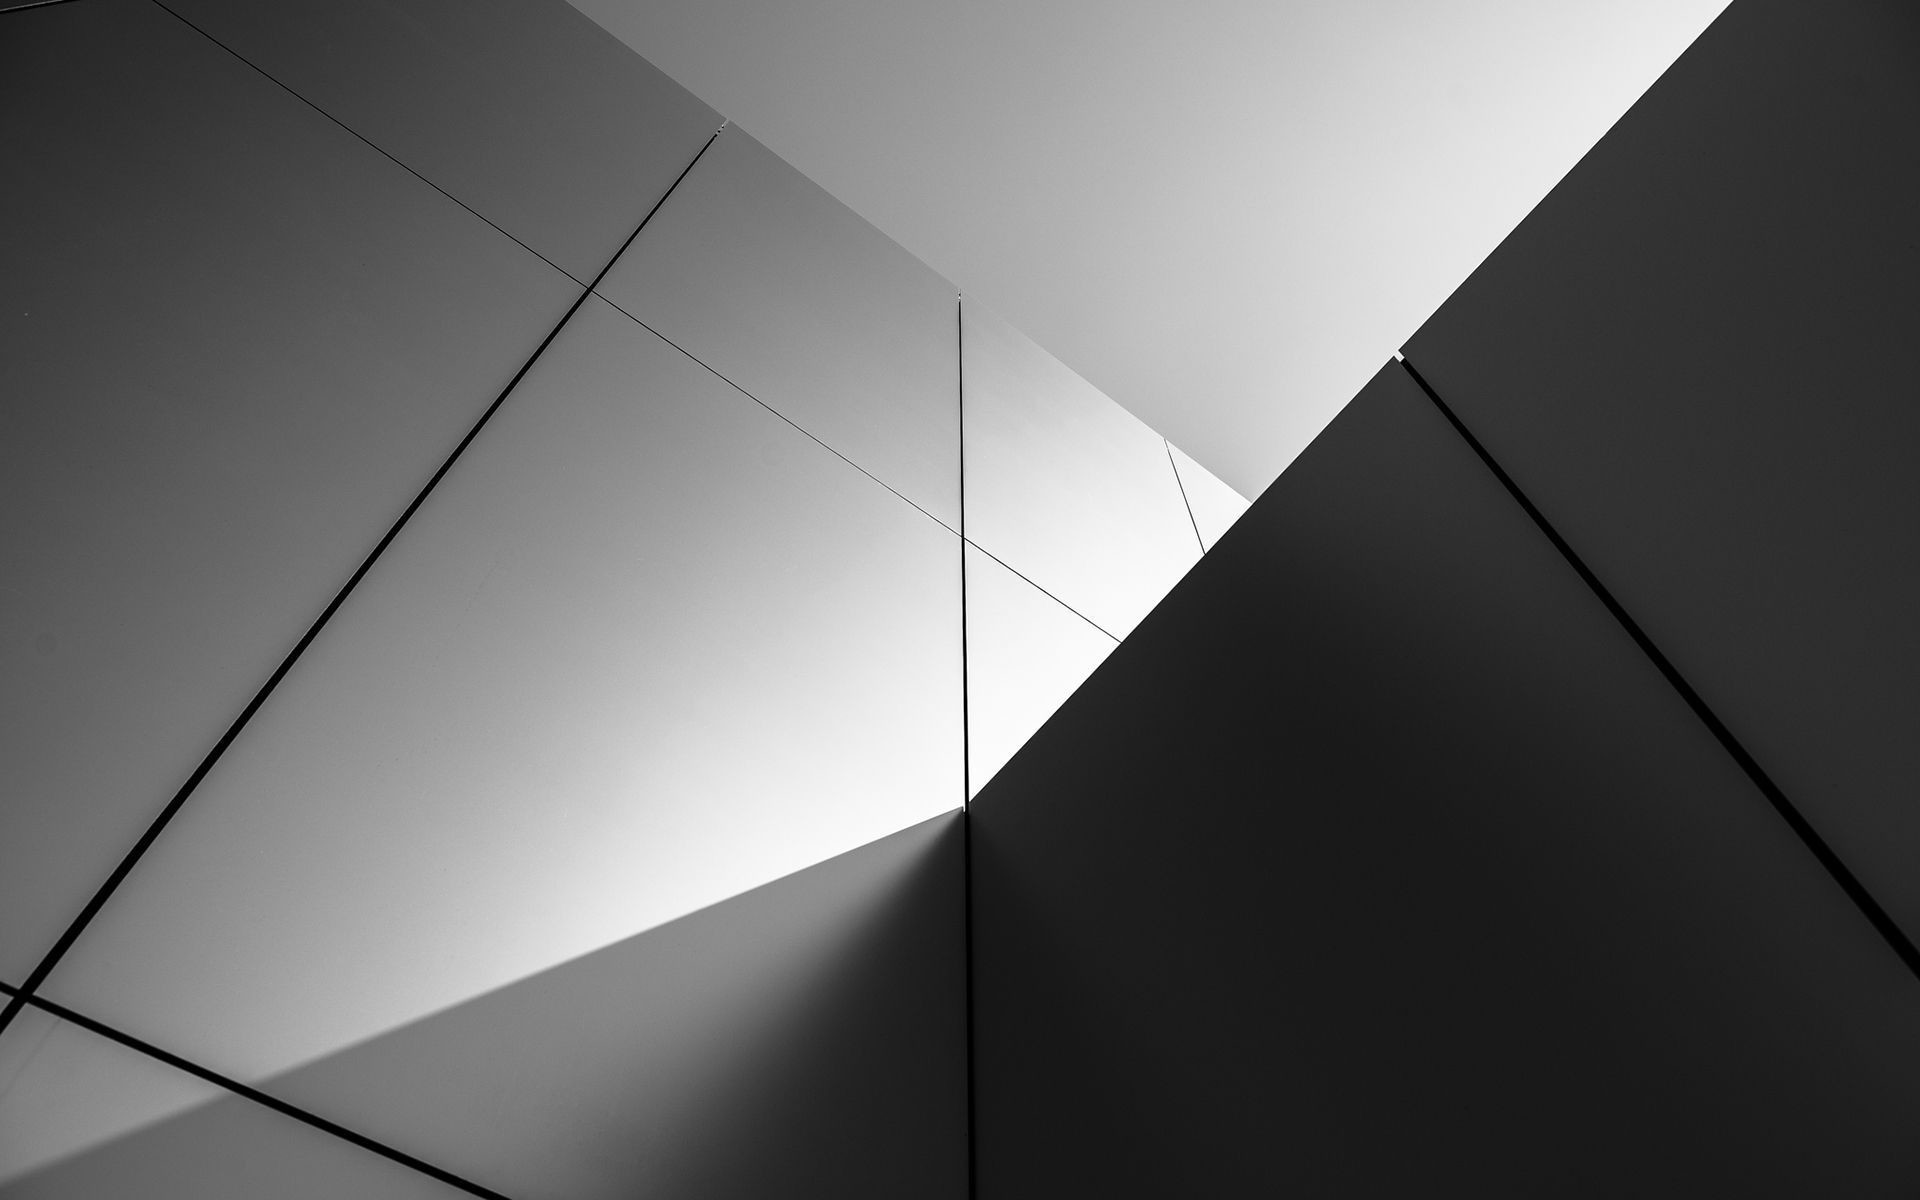 1920x1200 Buildings wall abstract black white wallpaper